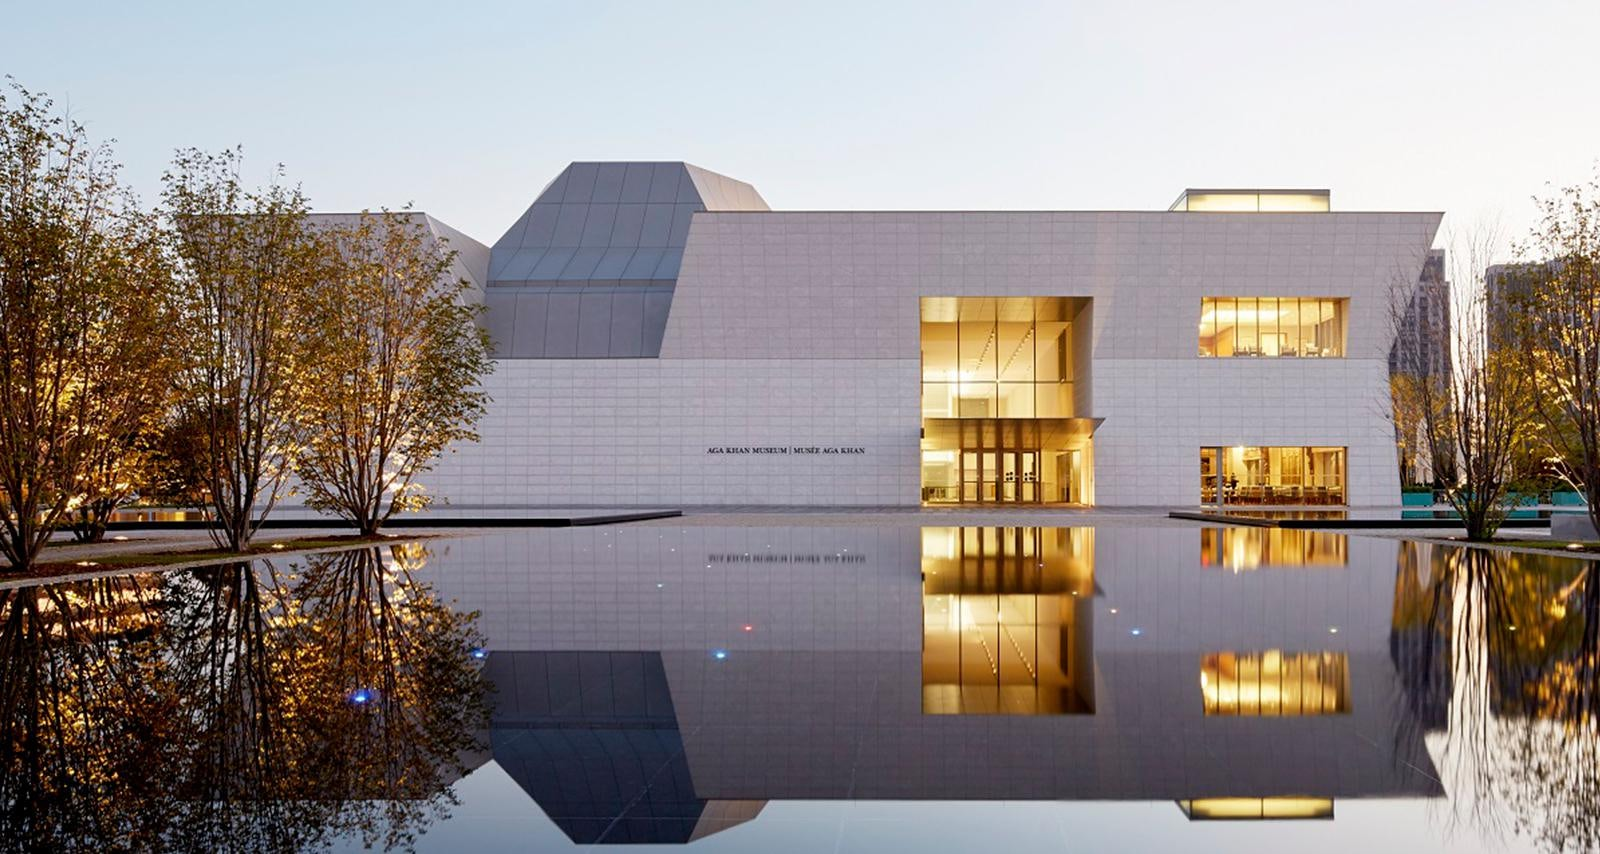 exterior of the Aga Khan museum in Toronto